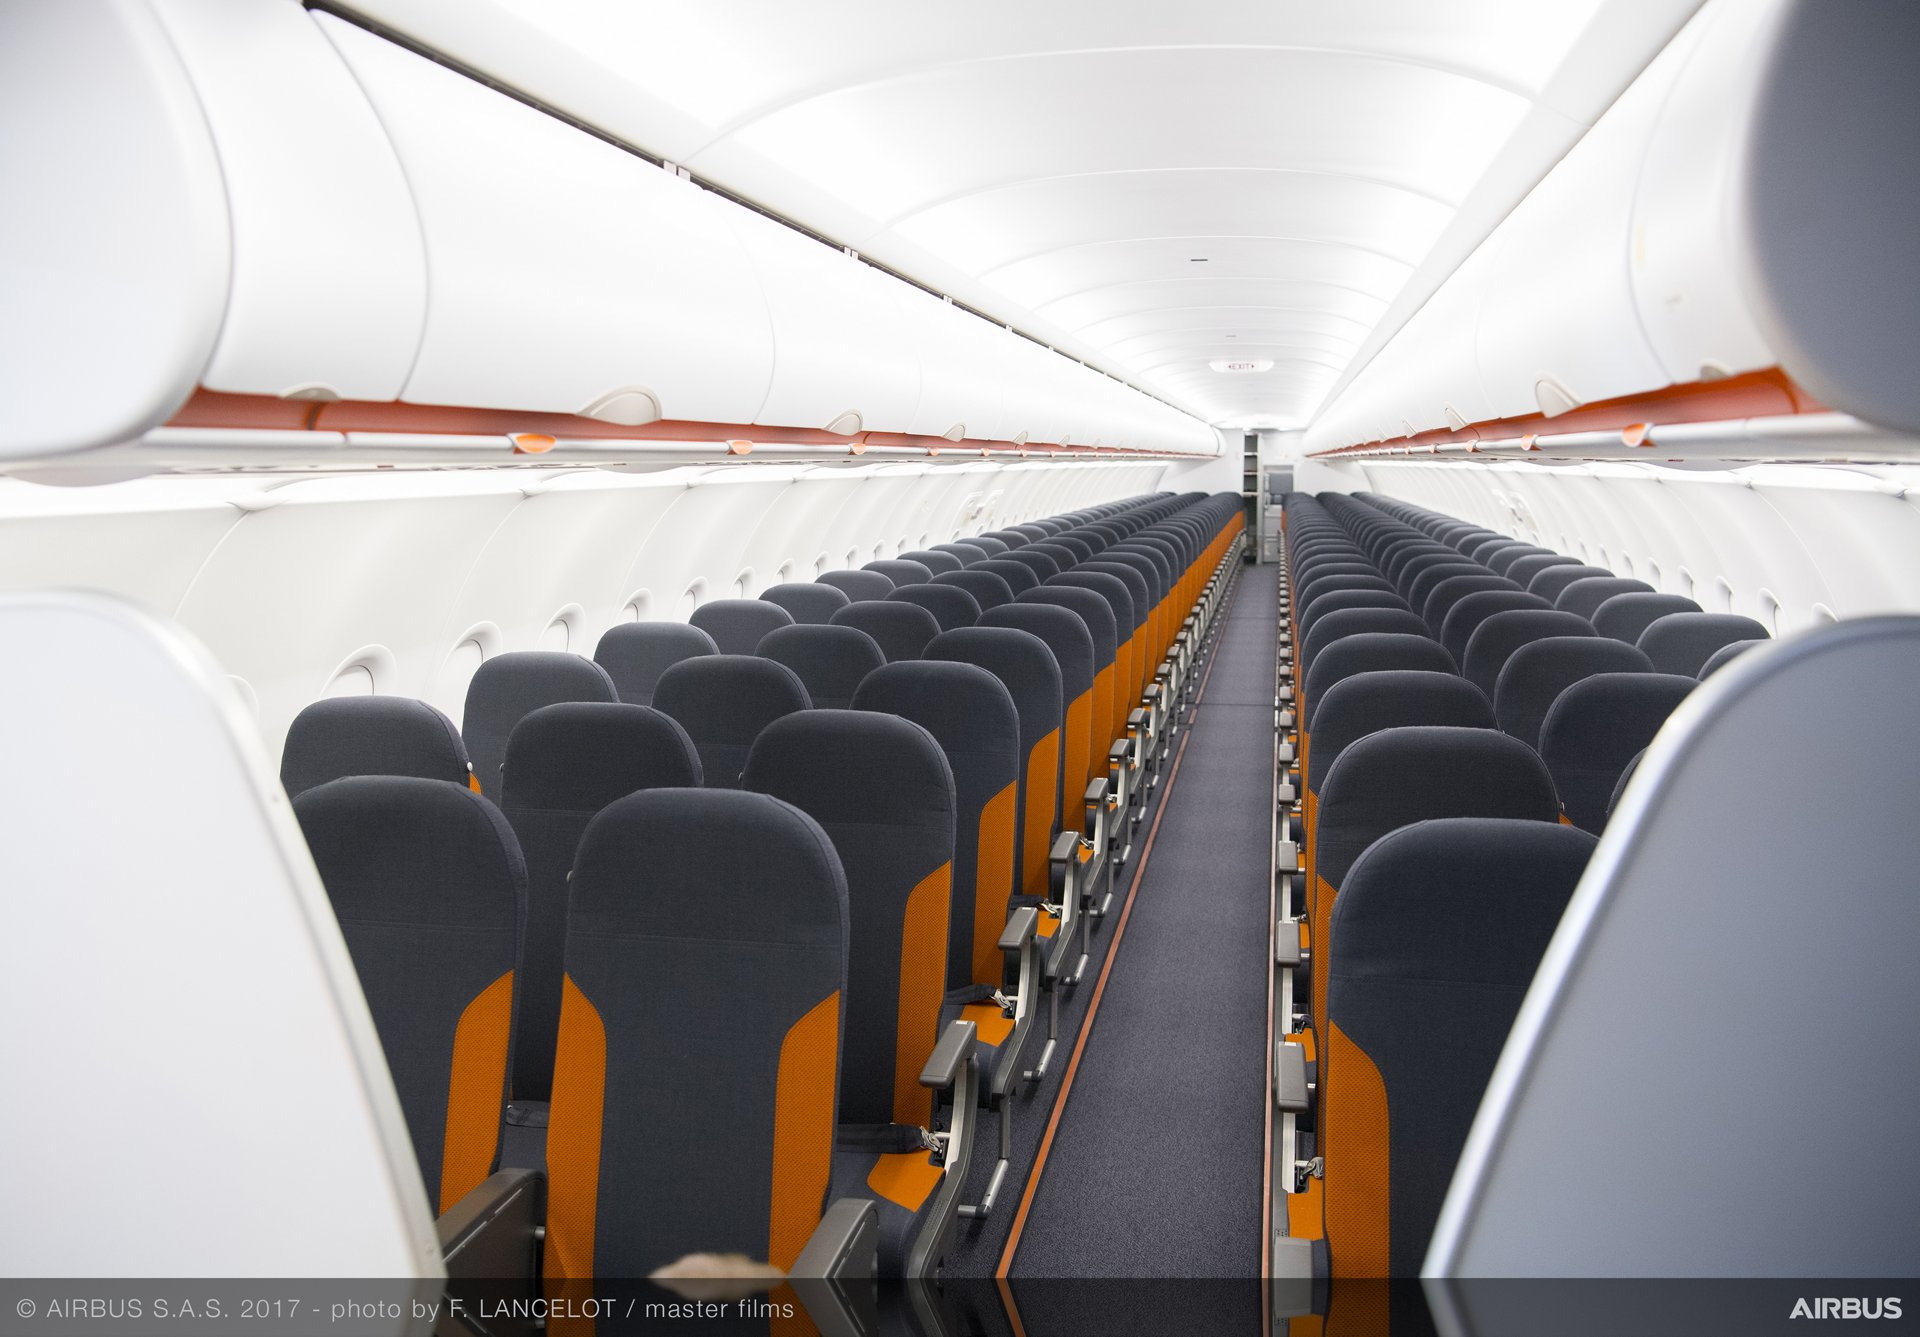 A320 Family cabin layout optimisation solutions, resulting in a set of enablers that add seats without reducing comfort.